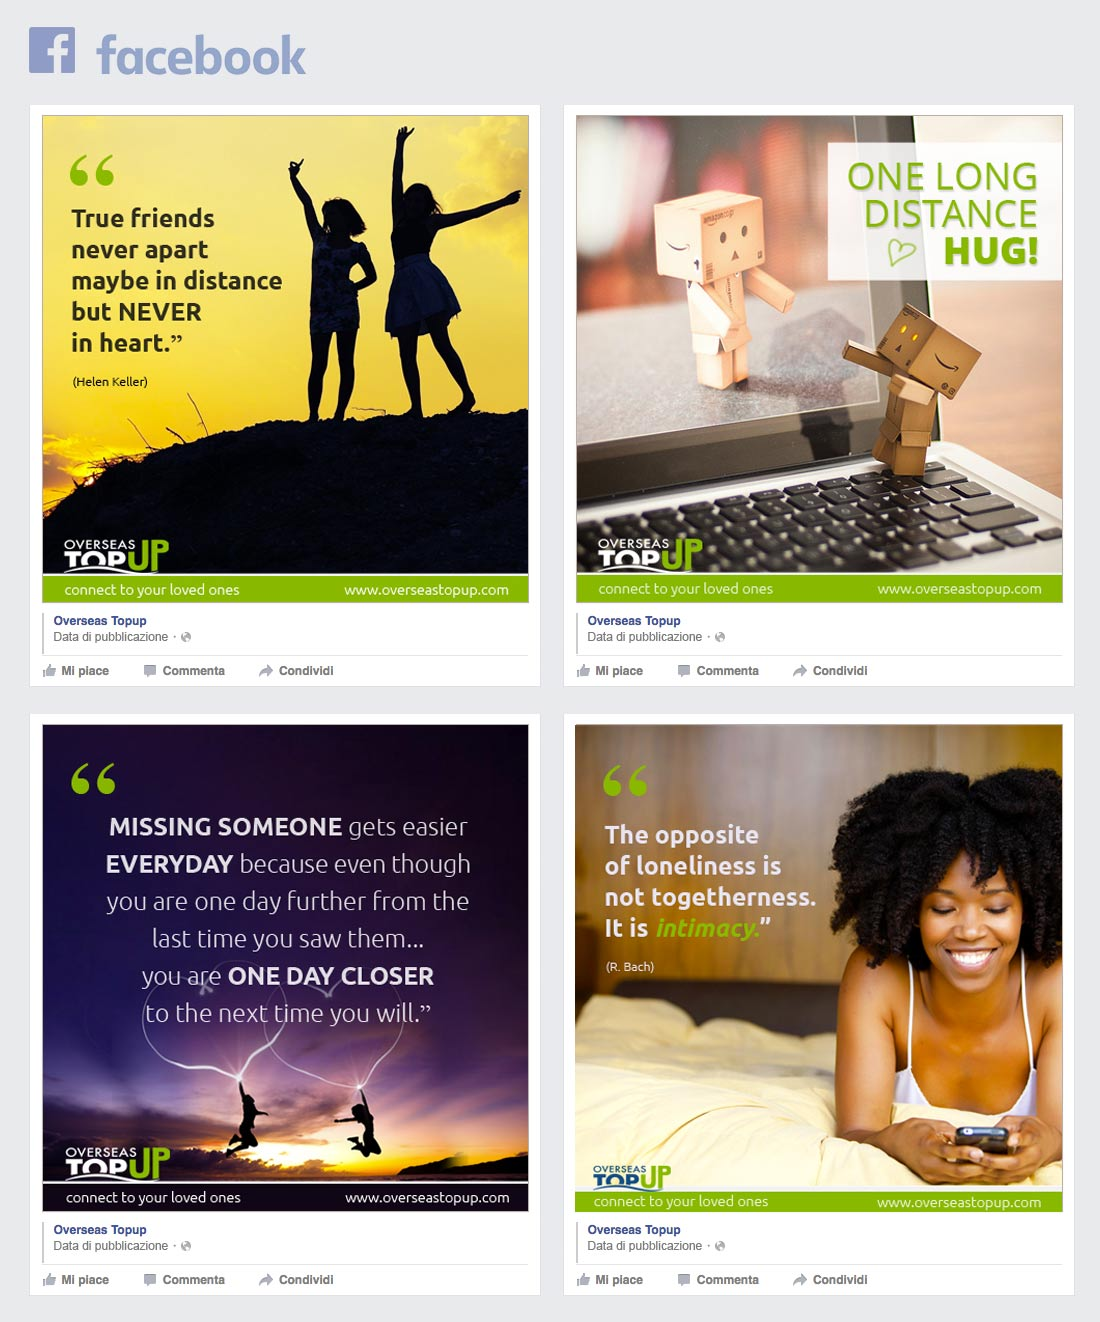 Overseas TopUp Facebook page social communication